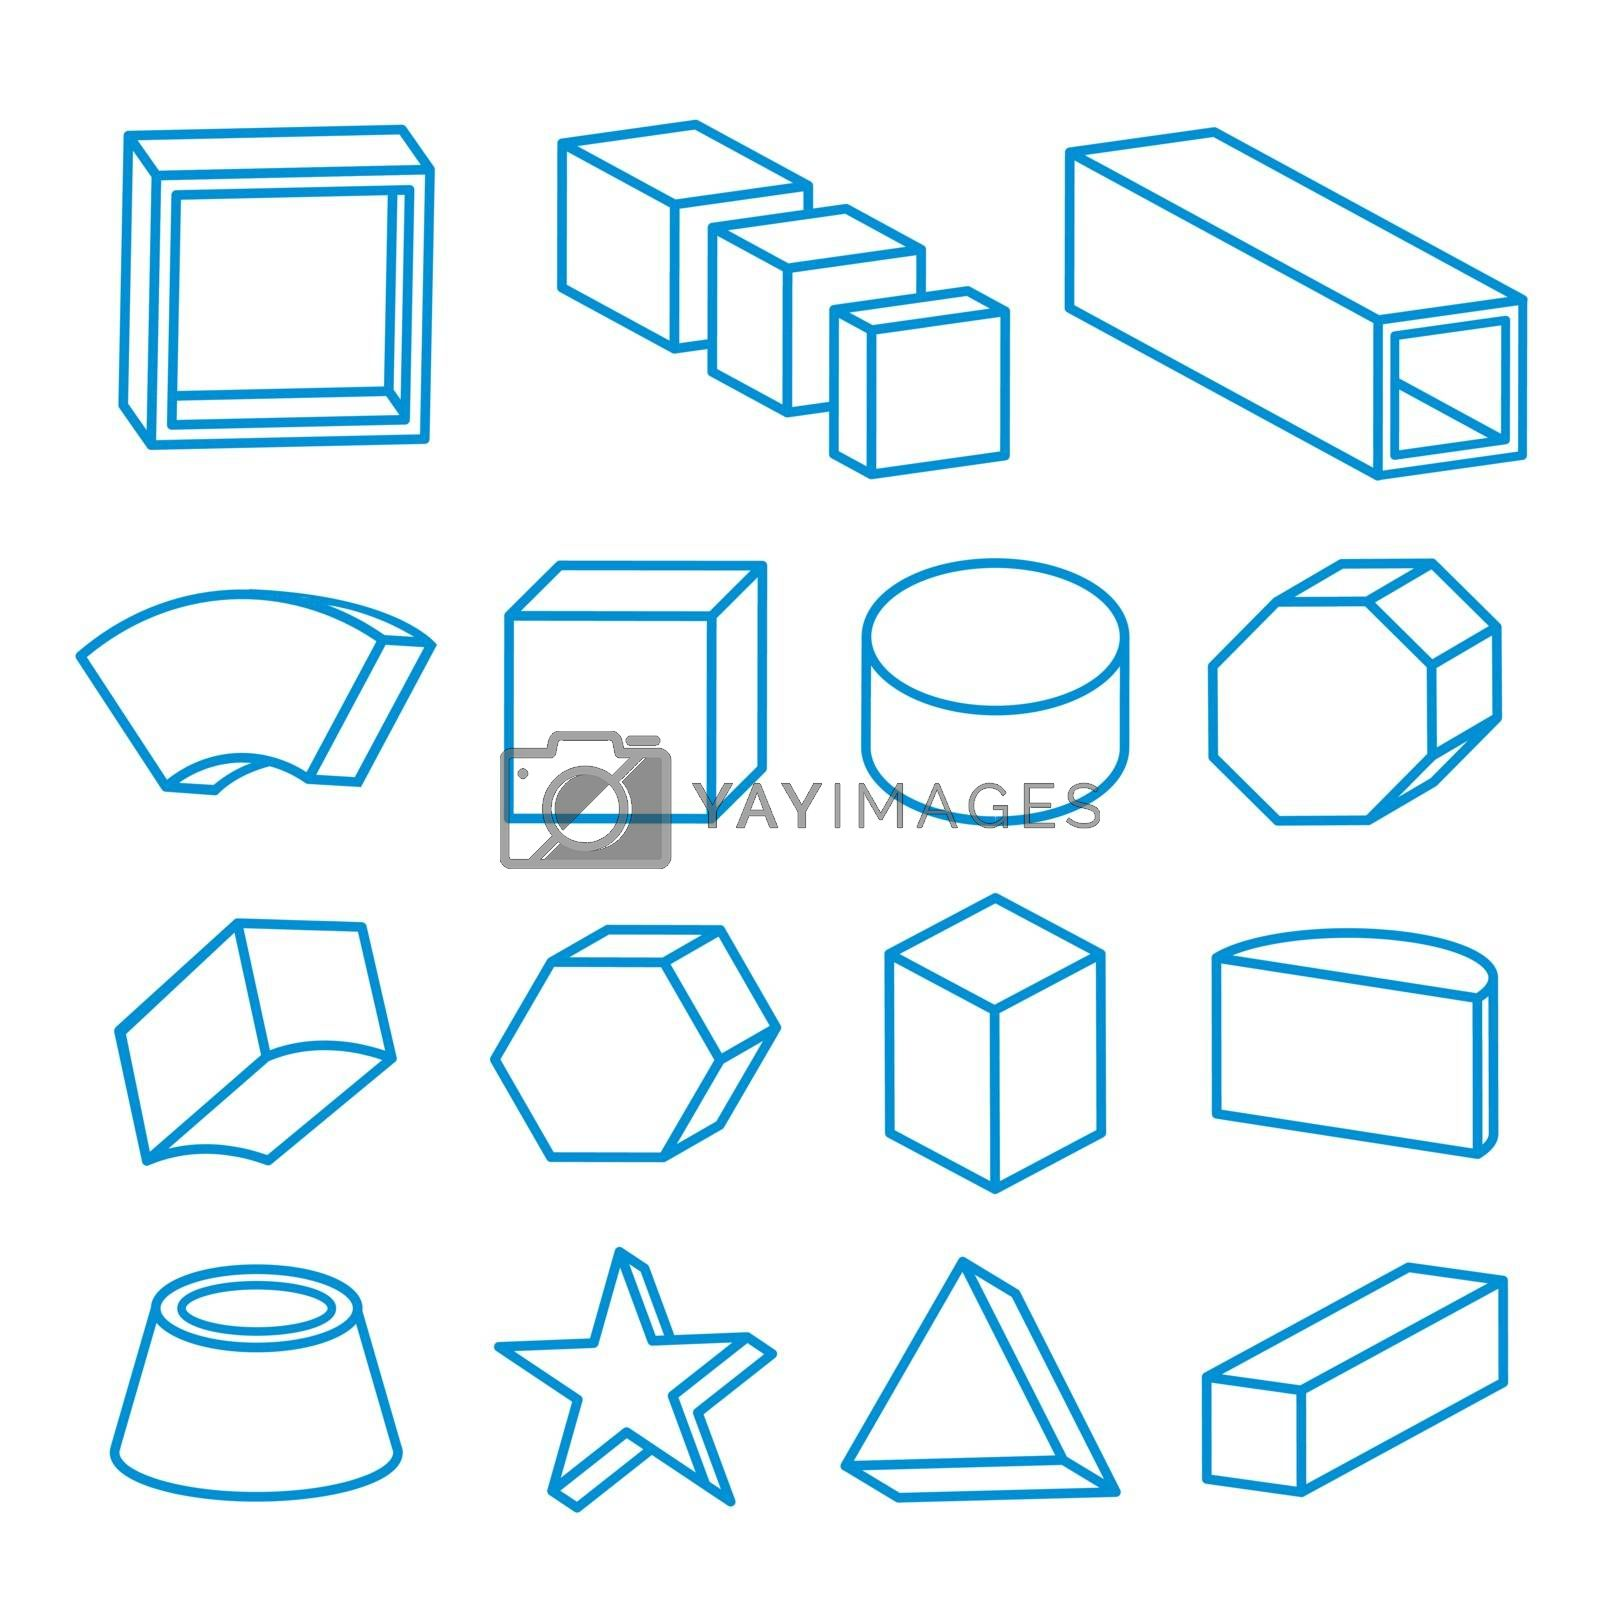 Set of 3D Geometric Line shapes, solids element vector illustration.